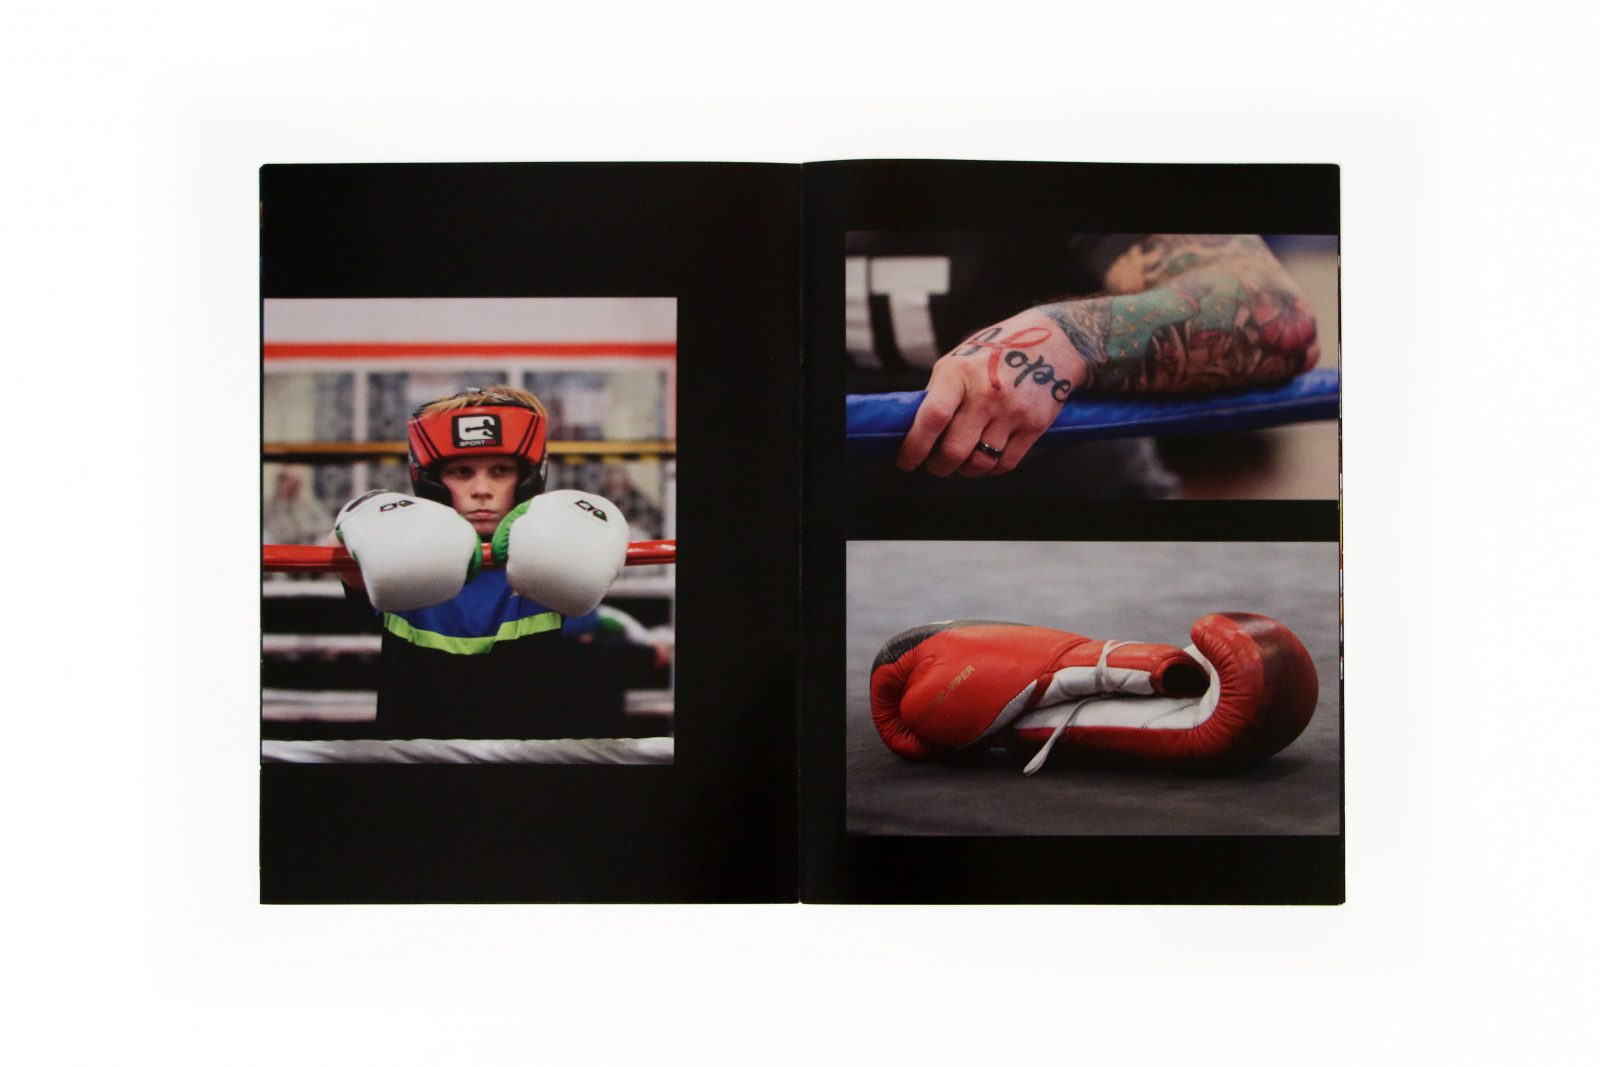 A collection of images, a young woman in boxing kit, a tattooed arm and a boxing glove.